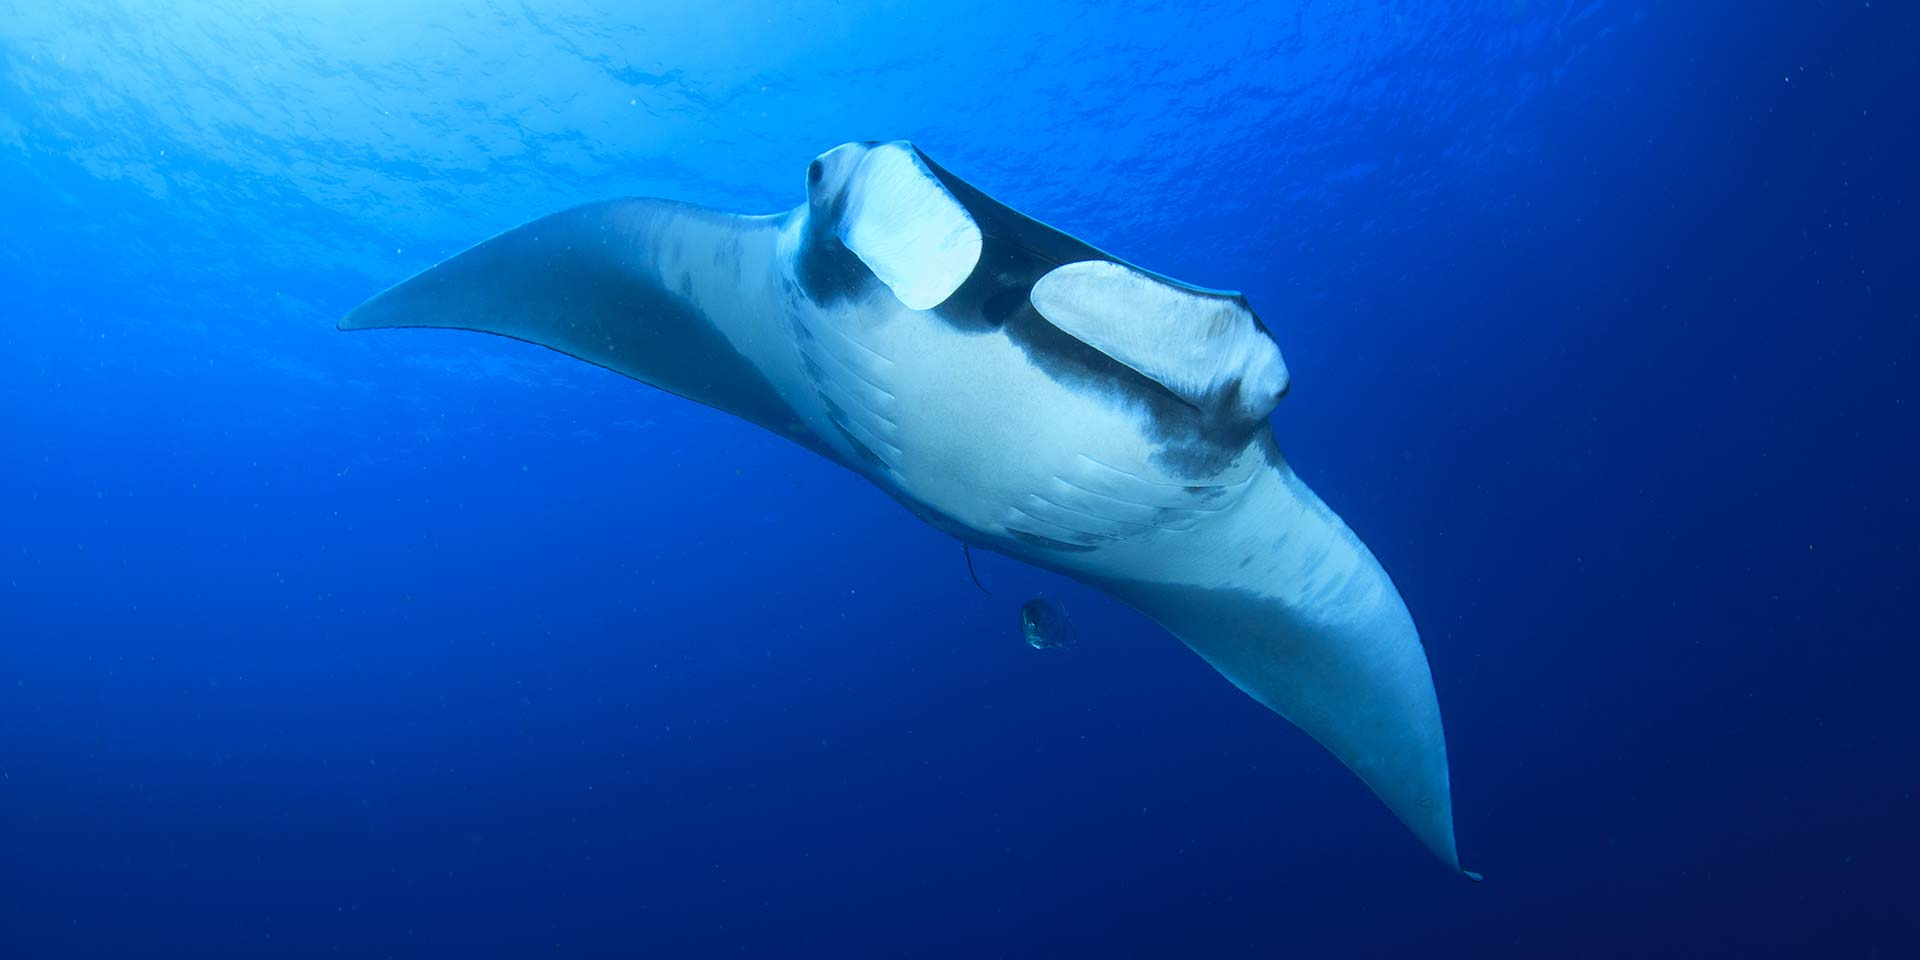 Searching for Manta Rays in the Similan Islands